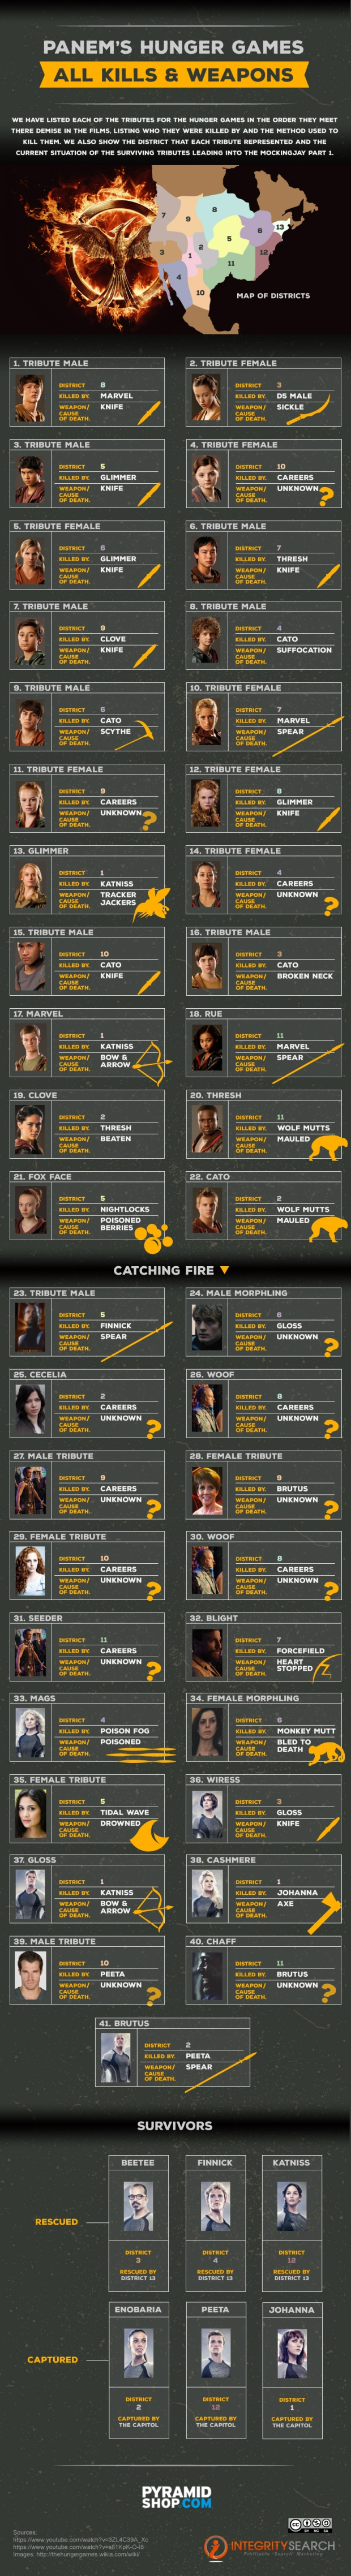 Hunger Games All Kills and Weapons Used